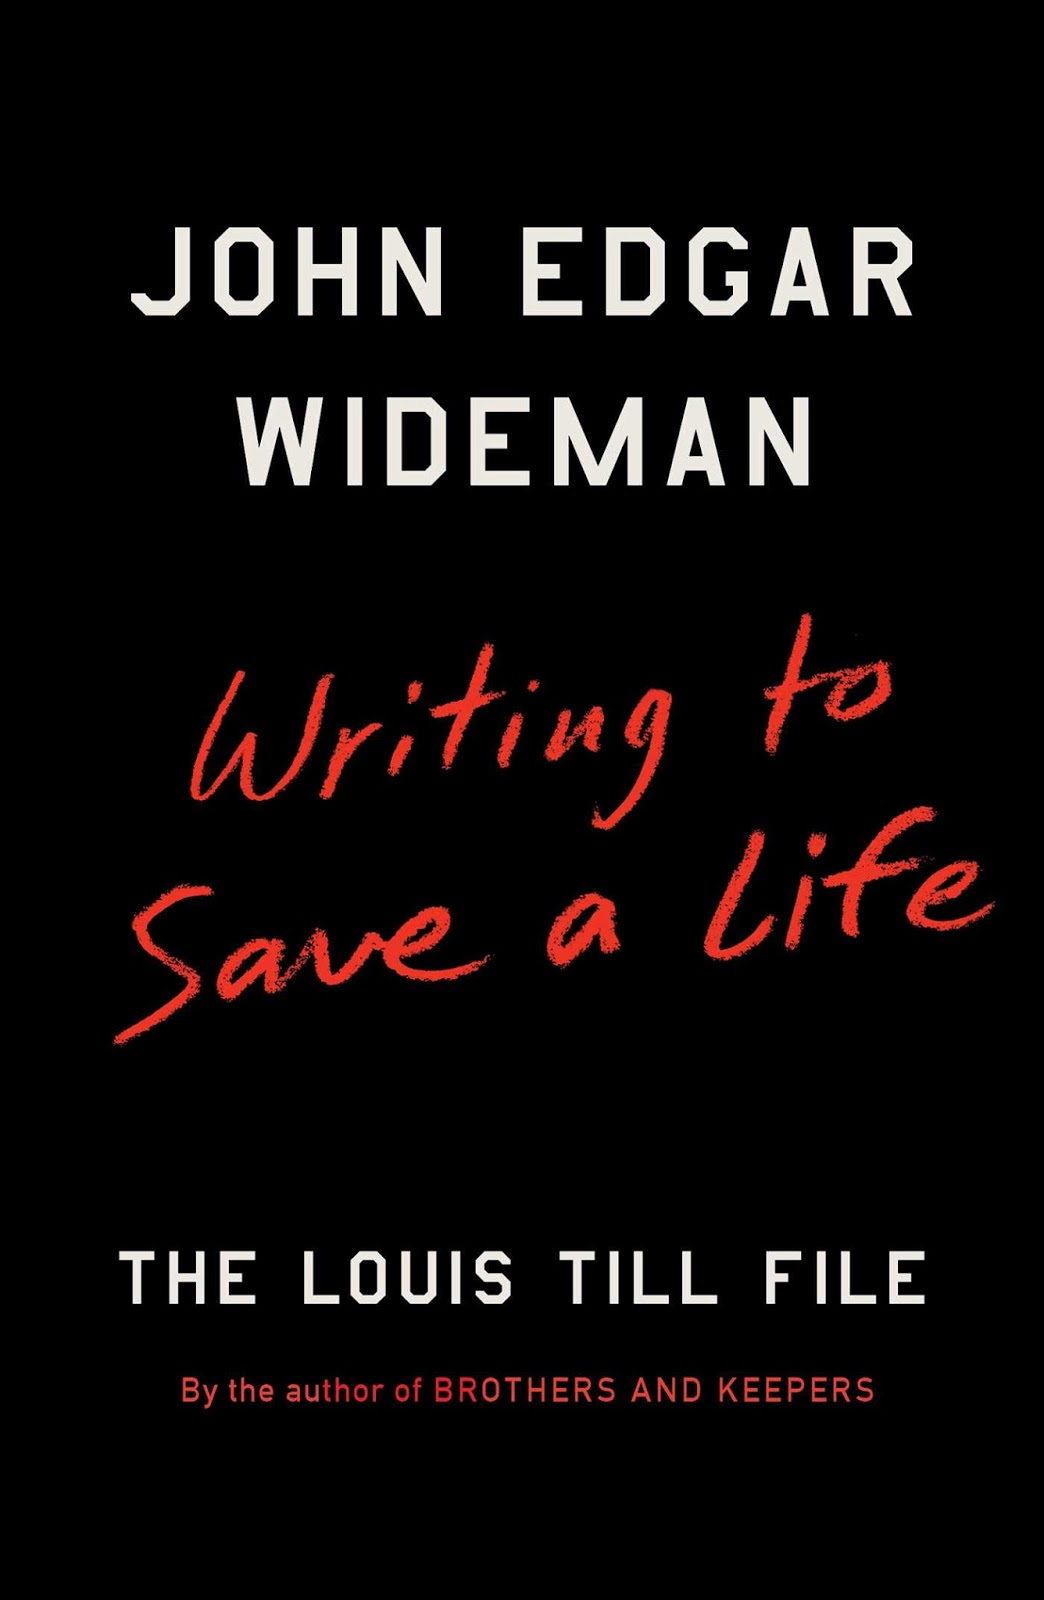 in john edgar wideman's essay our If you visit our website hoping to find by john edgar  enotescom complete summary of john edgar wideman's  brothers and keepers john edgar wideman essays.